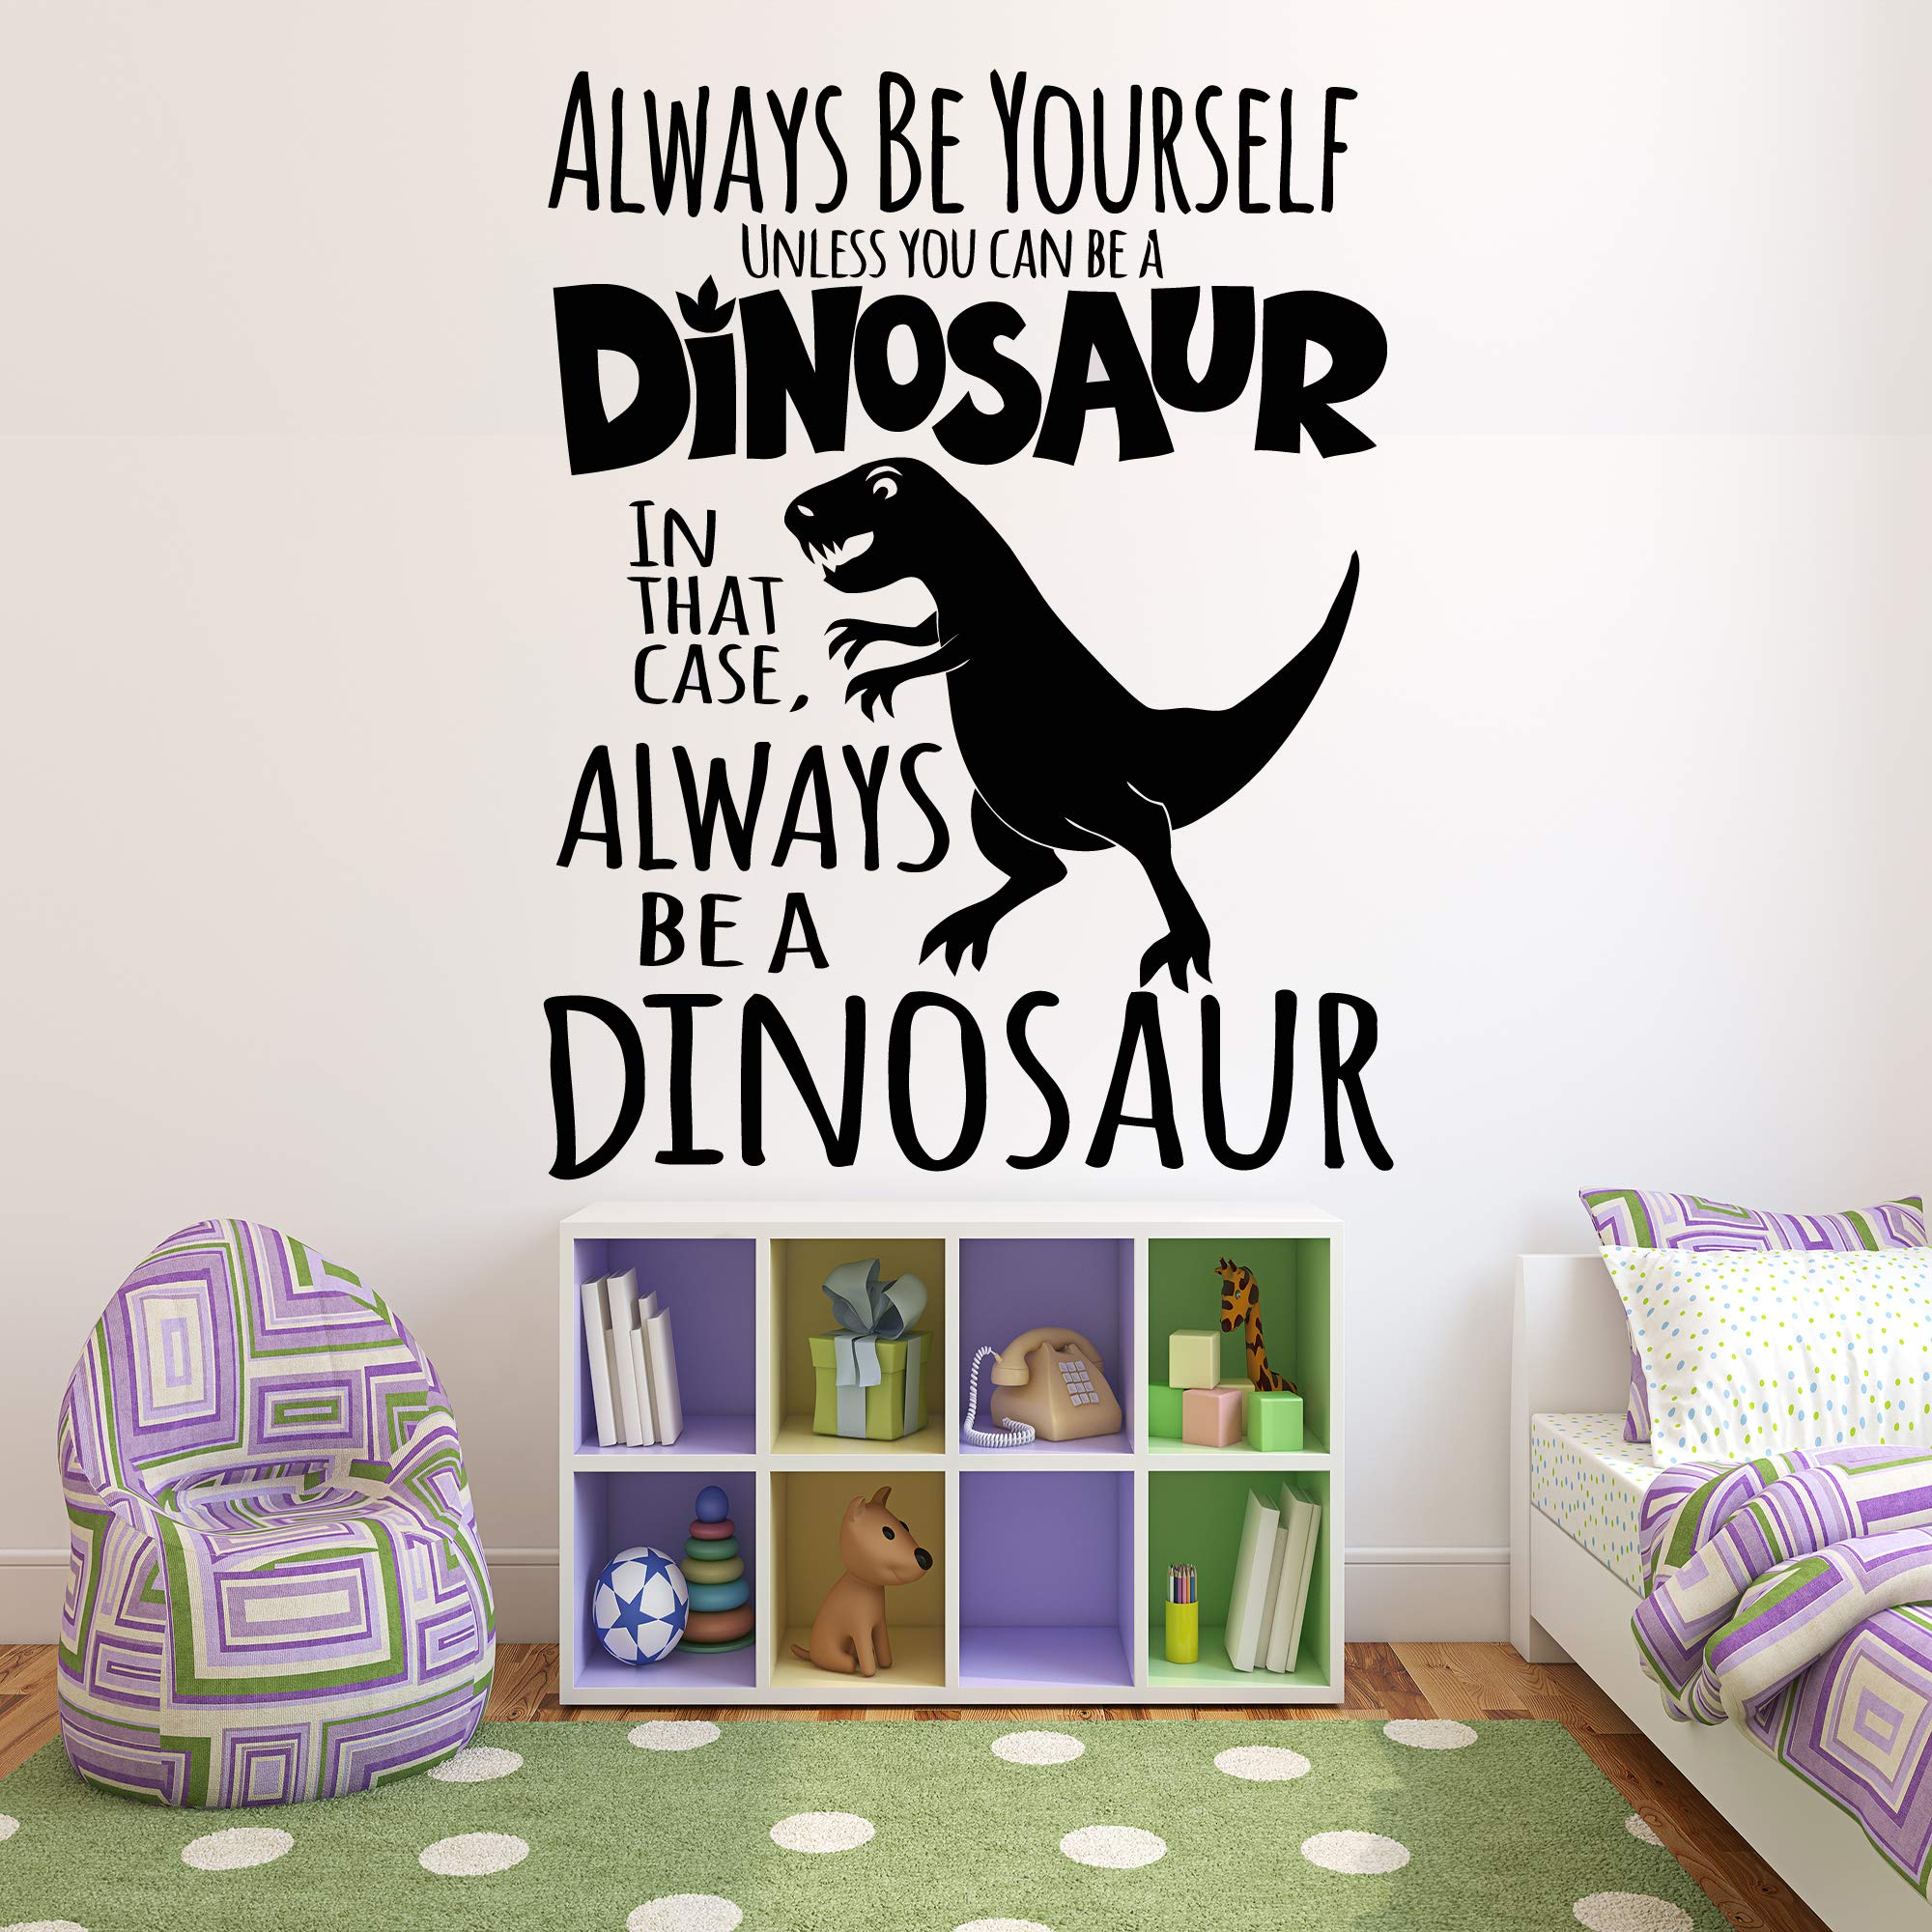 Dinosaur Room Decor Wall Decals Dinosa Buy Online In Pakistan At Desertcart